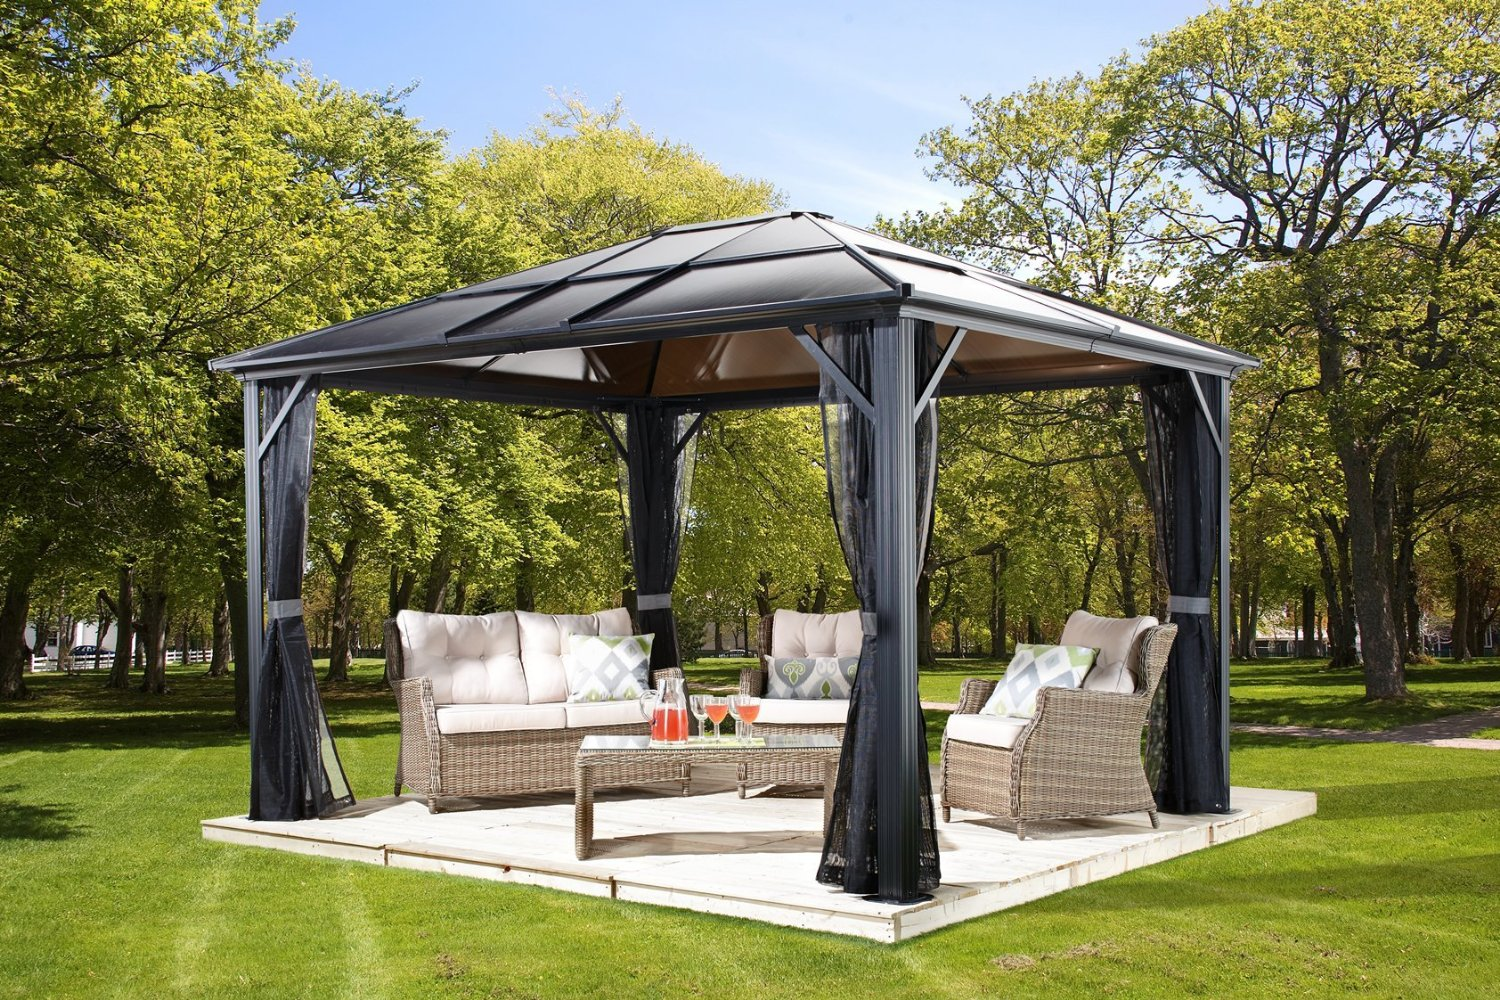 Hardtop Gazebos Best 2018 Choices Sorted By Size